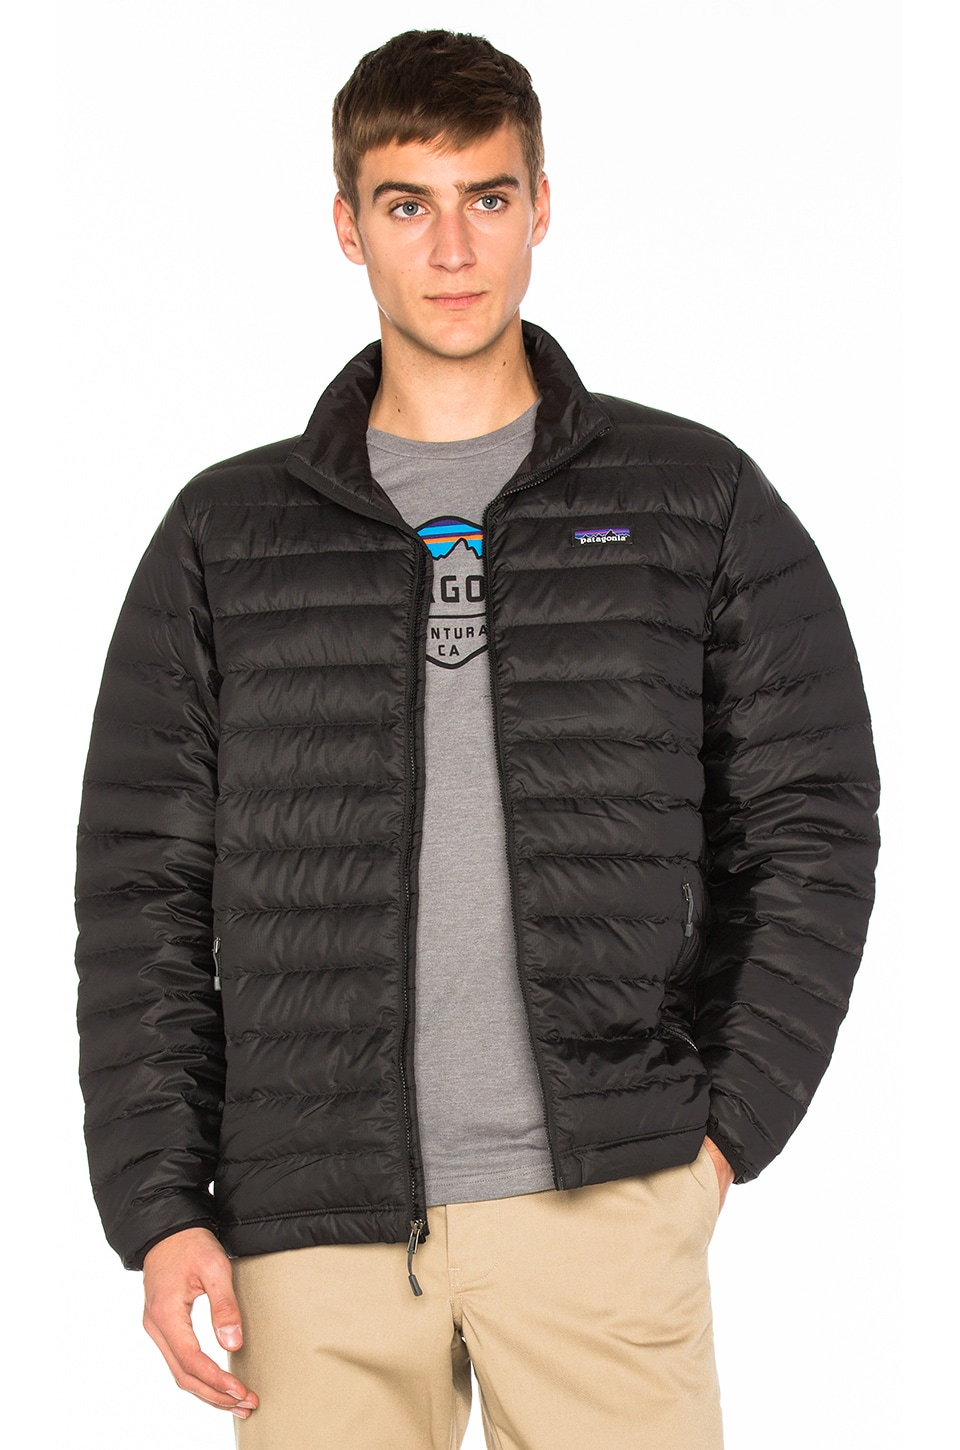 Patagonia Down Sweater in Black